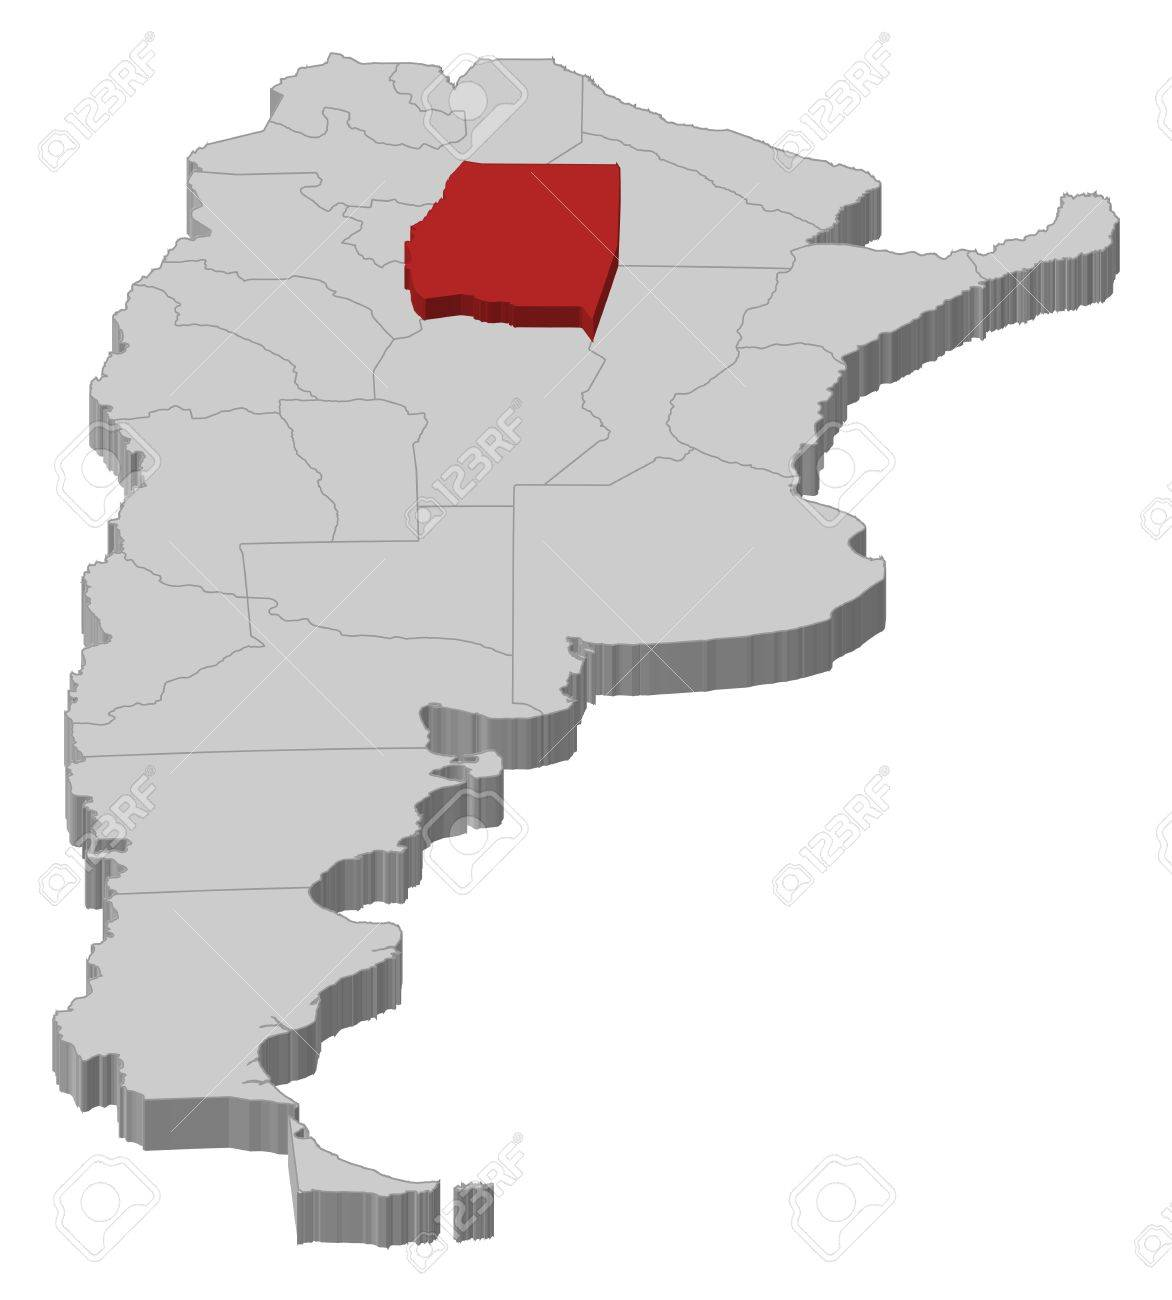 Political Map Of Argentina With The Several Provinces Where Santiago